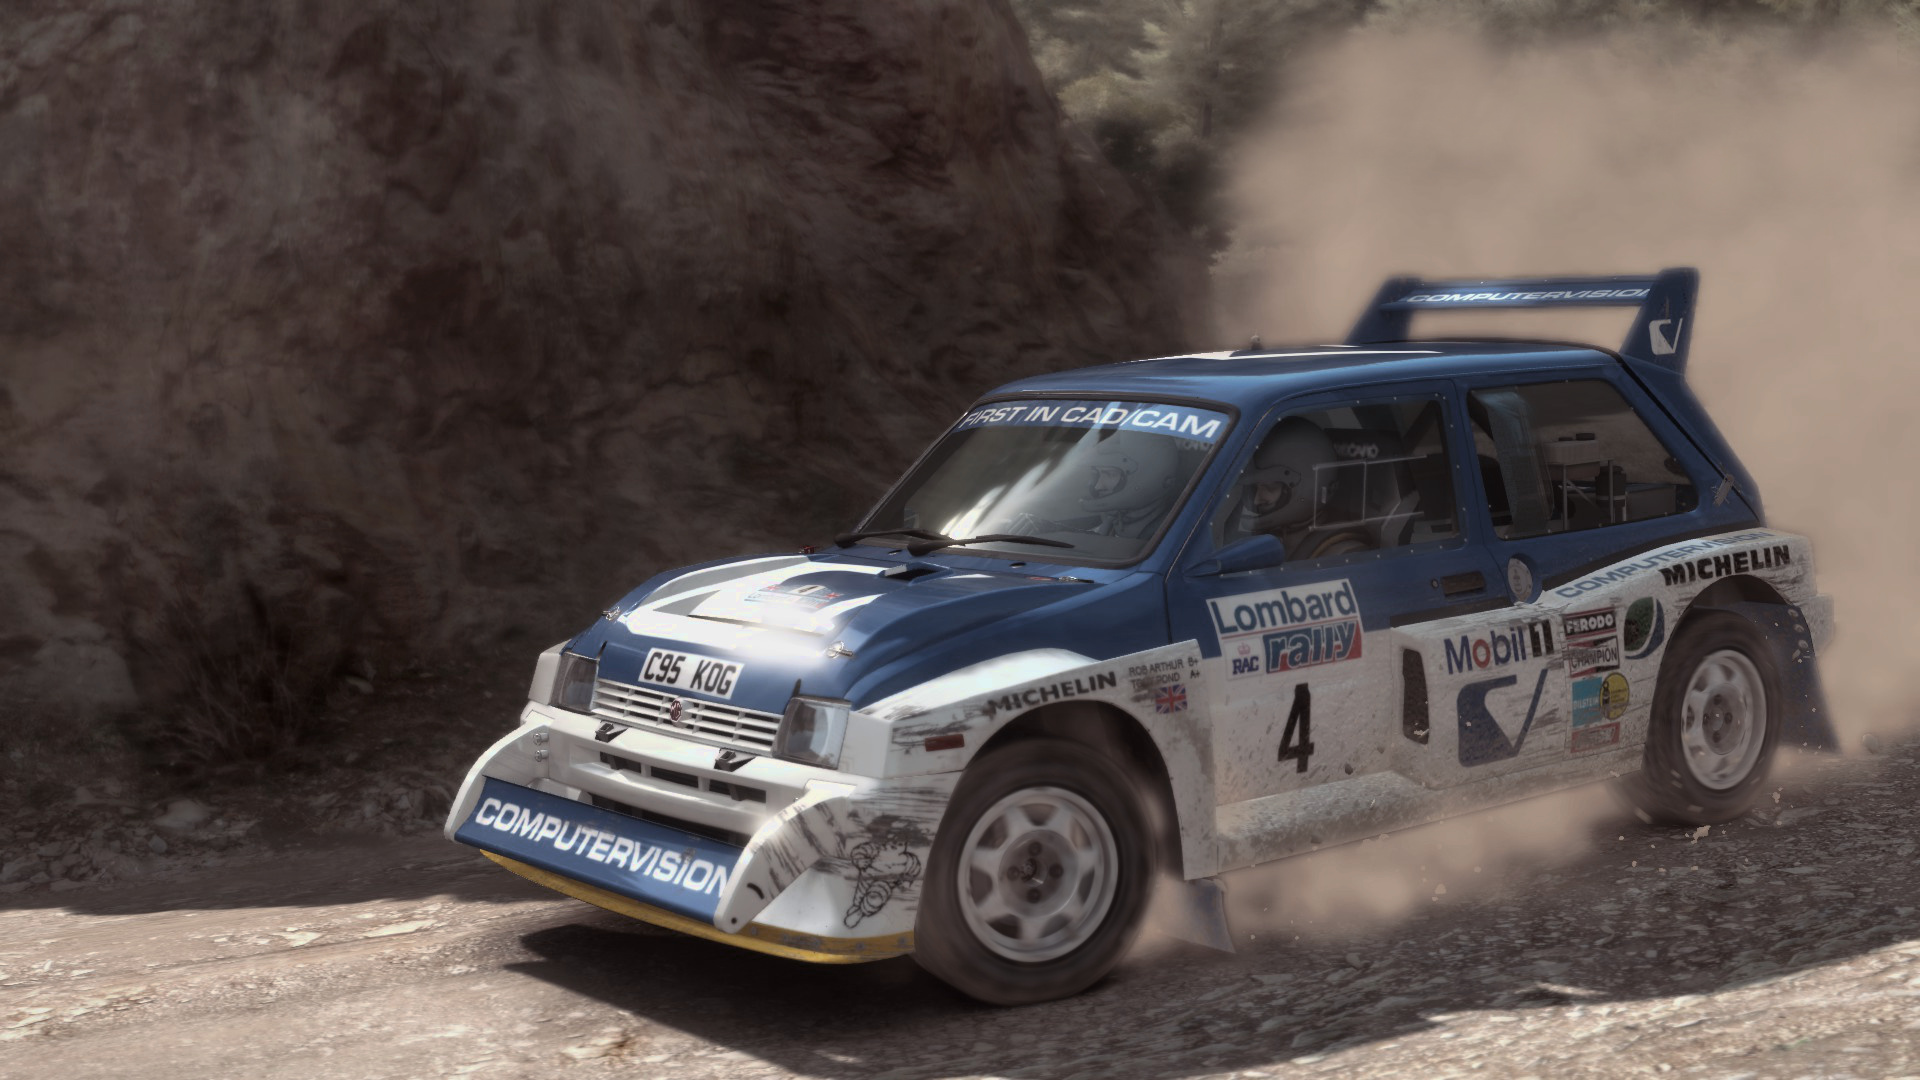 Metro 6r4 in Greece